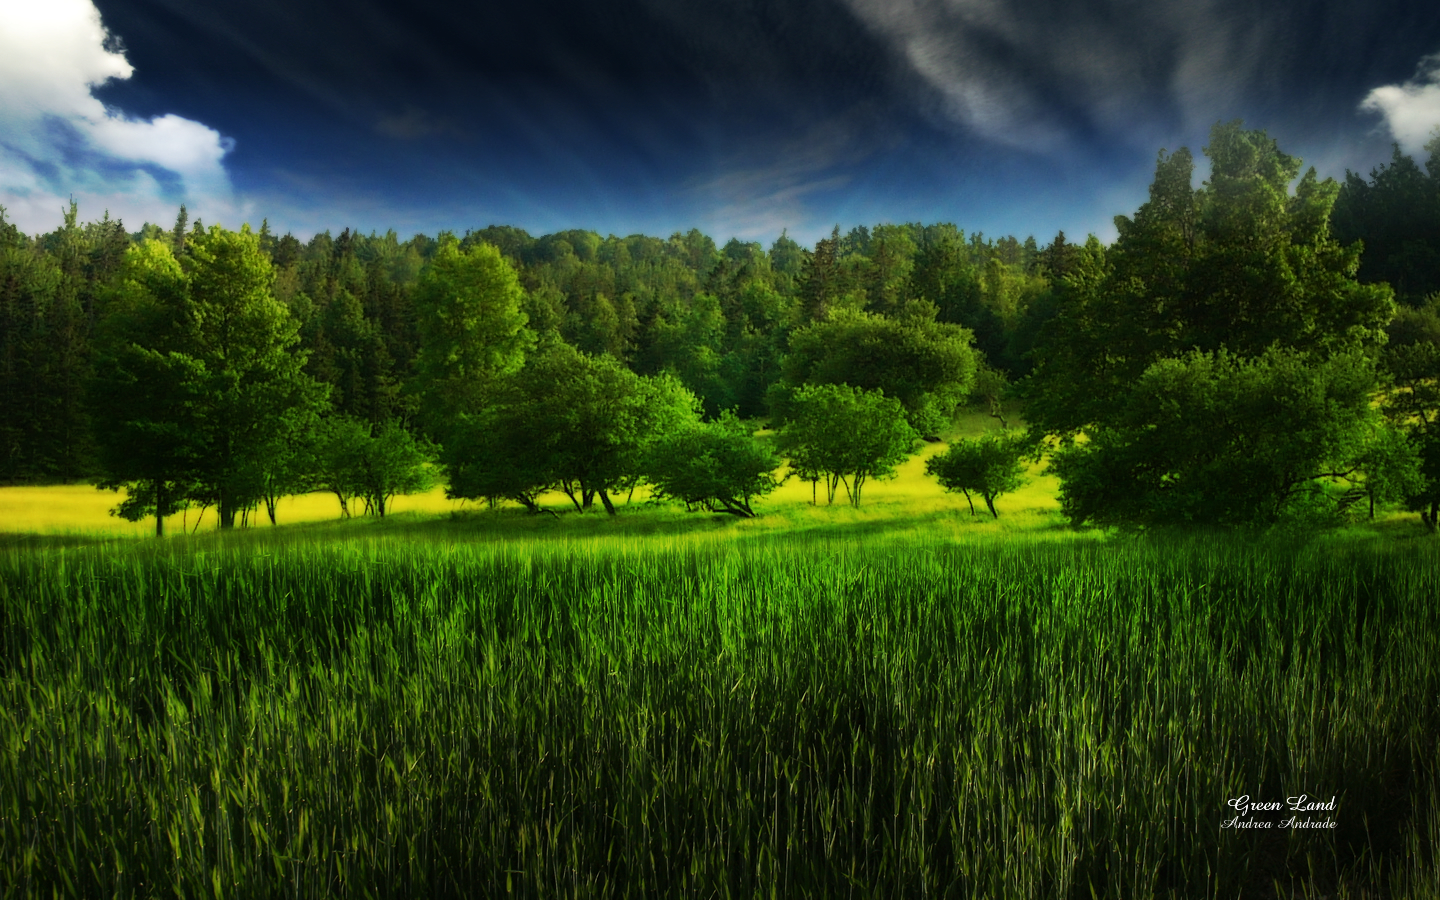 Green Land picture, Green Land photo, Green Land wallpaper